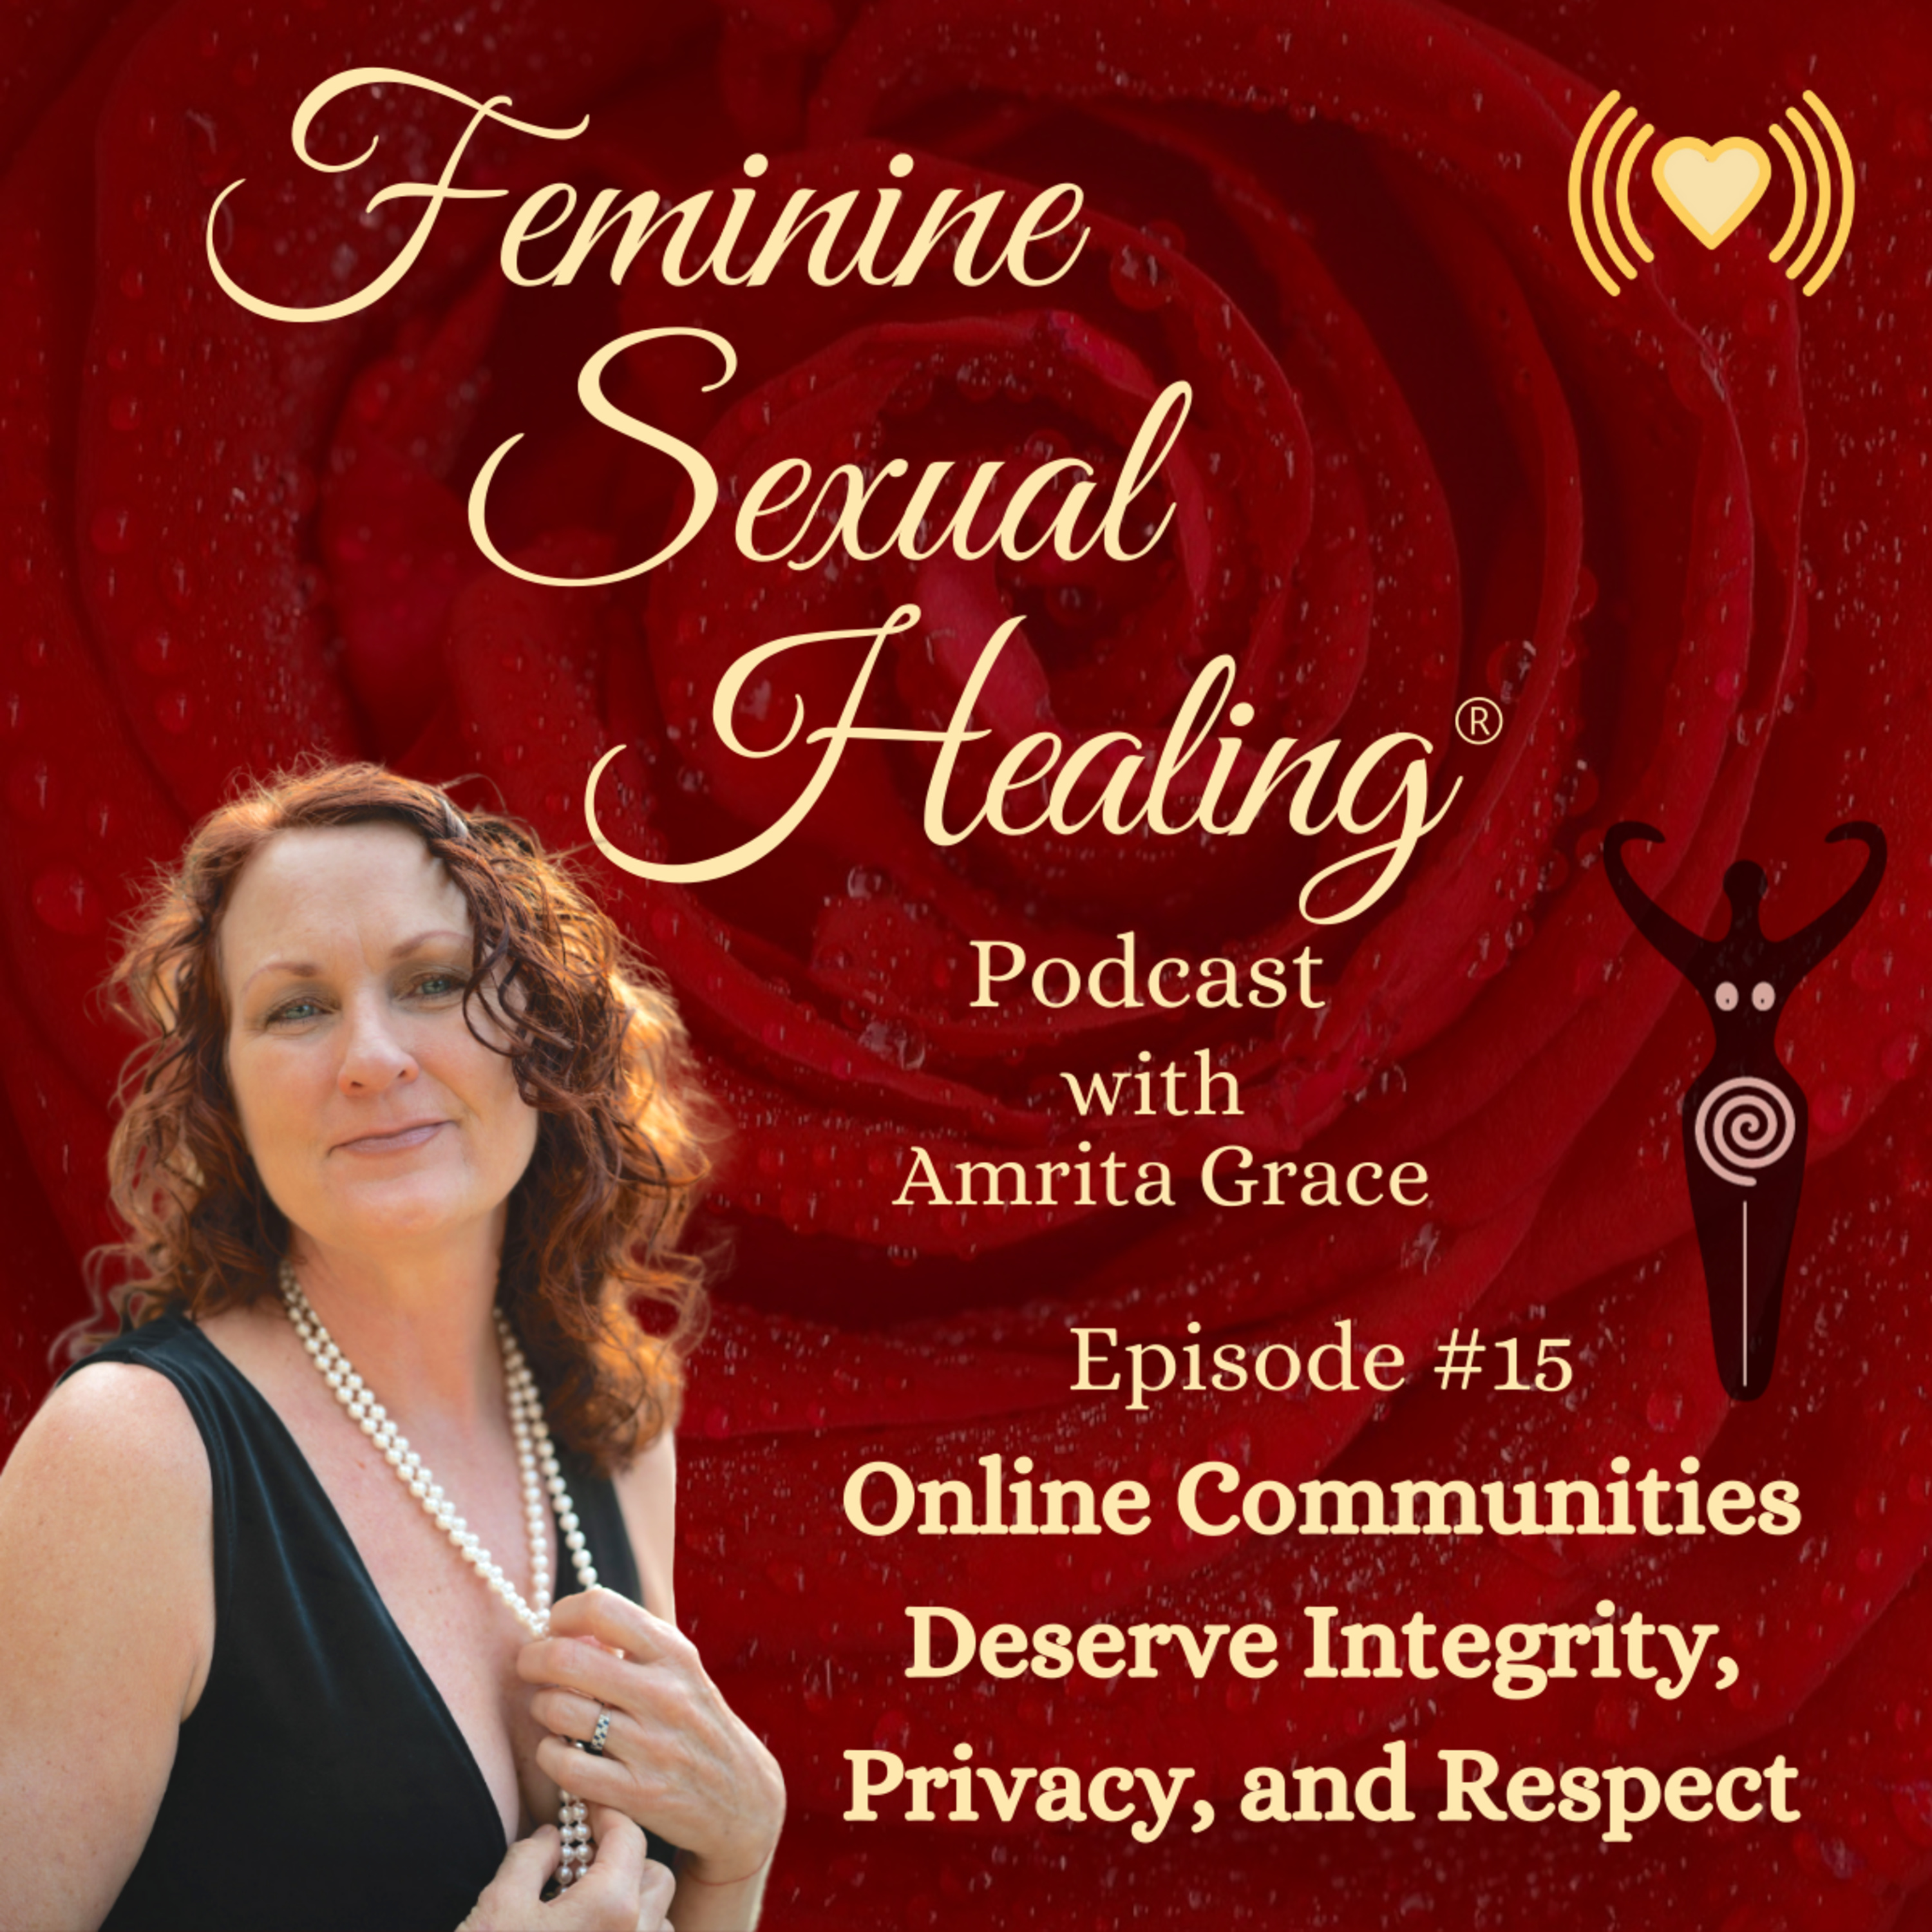 Episode #14 Online Communities Deserve Integrity, Privacy, and Respect